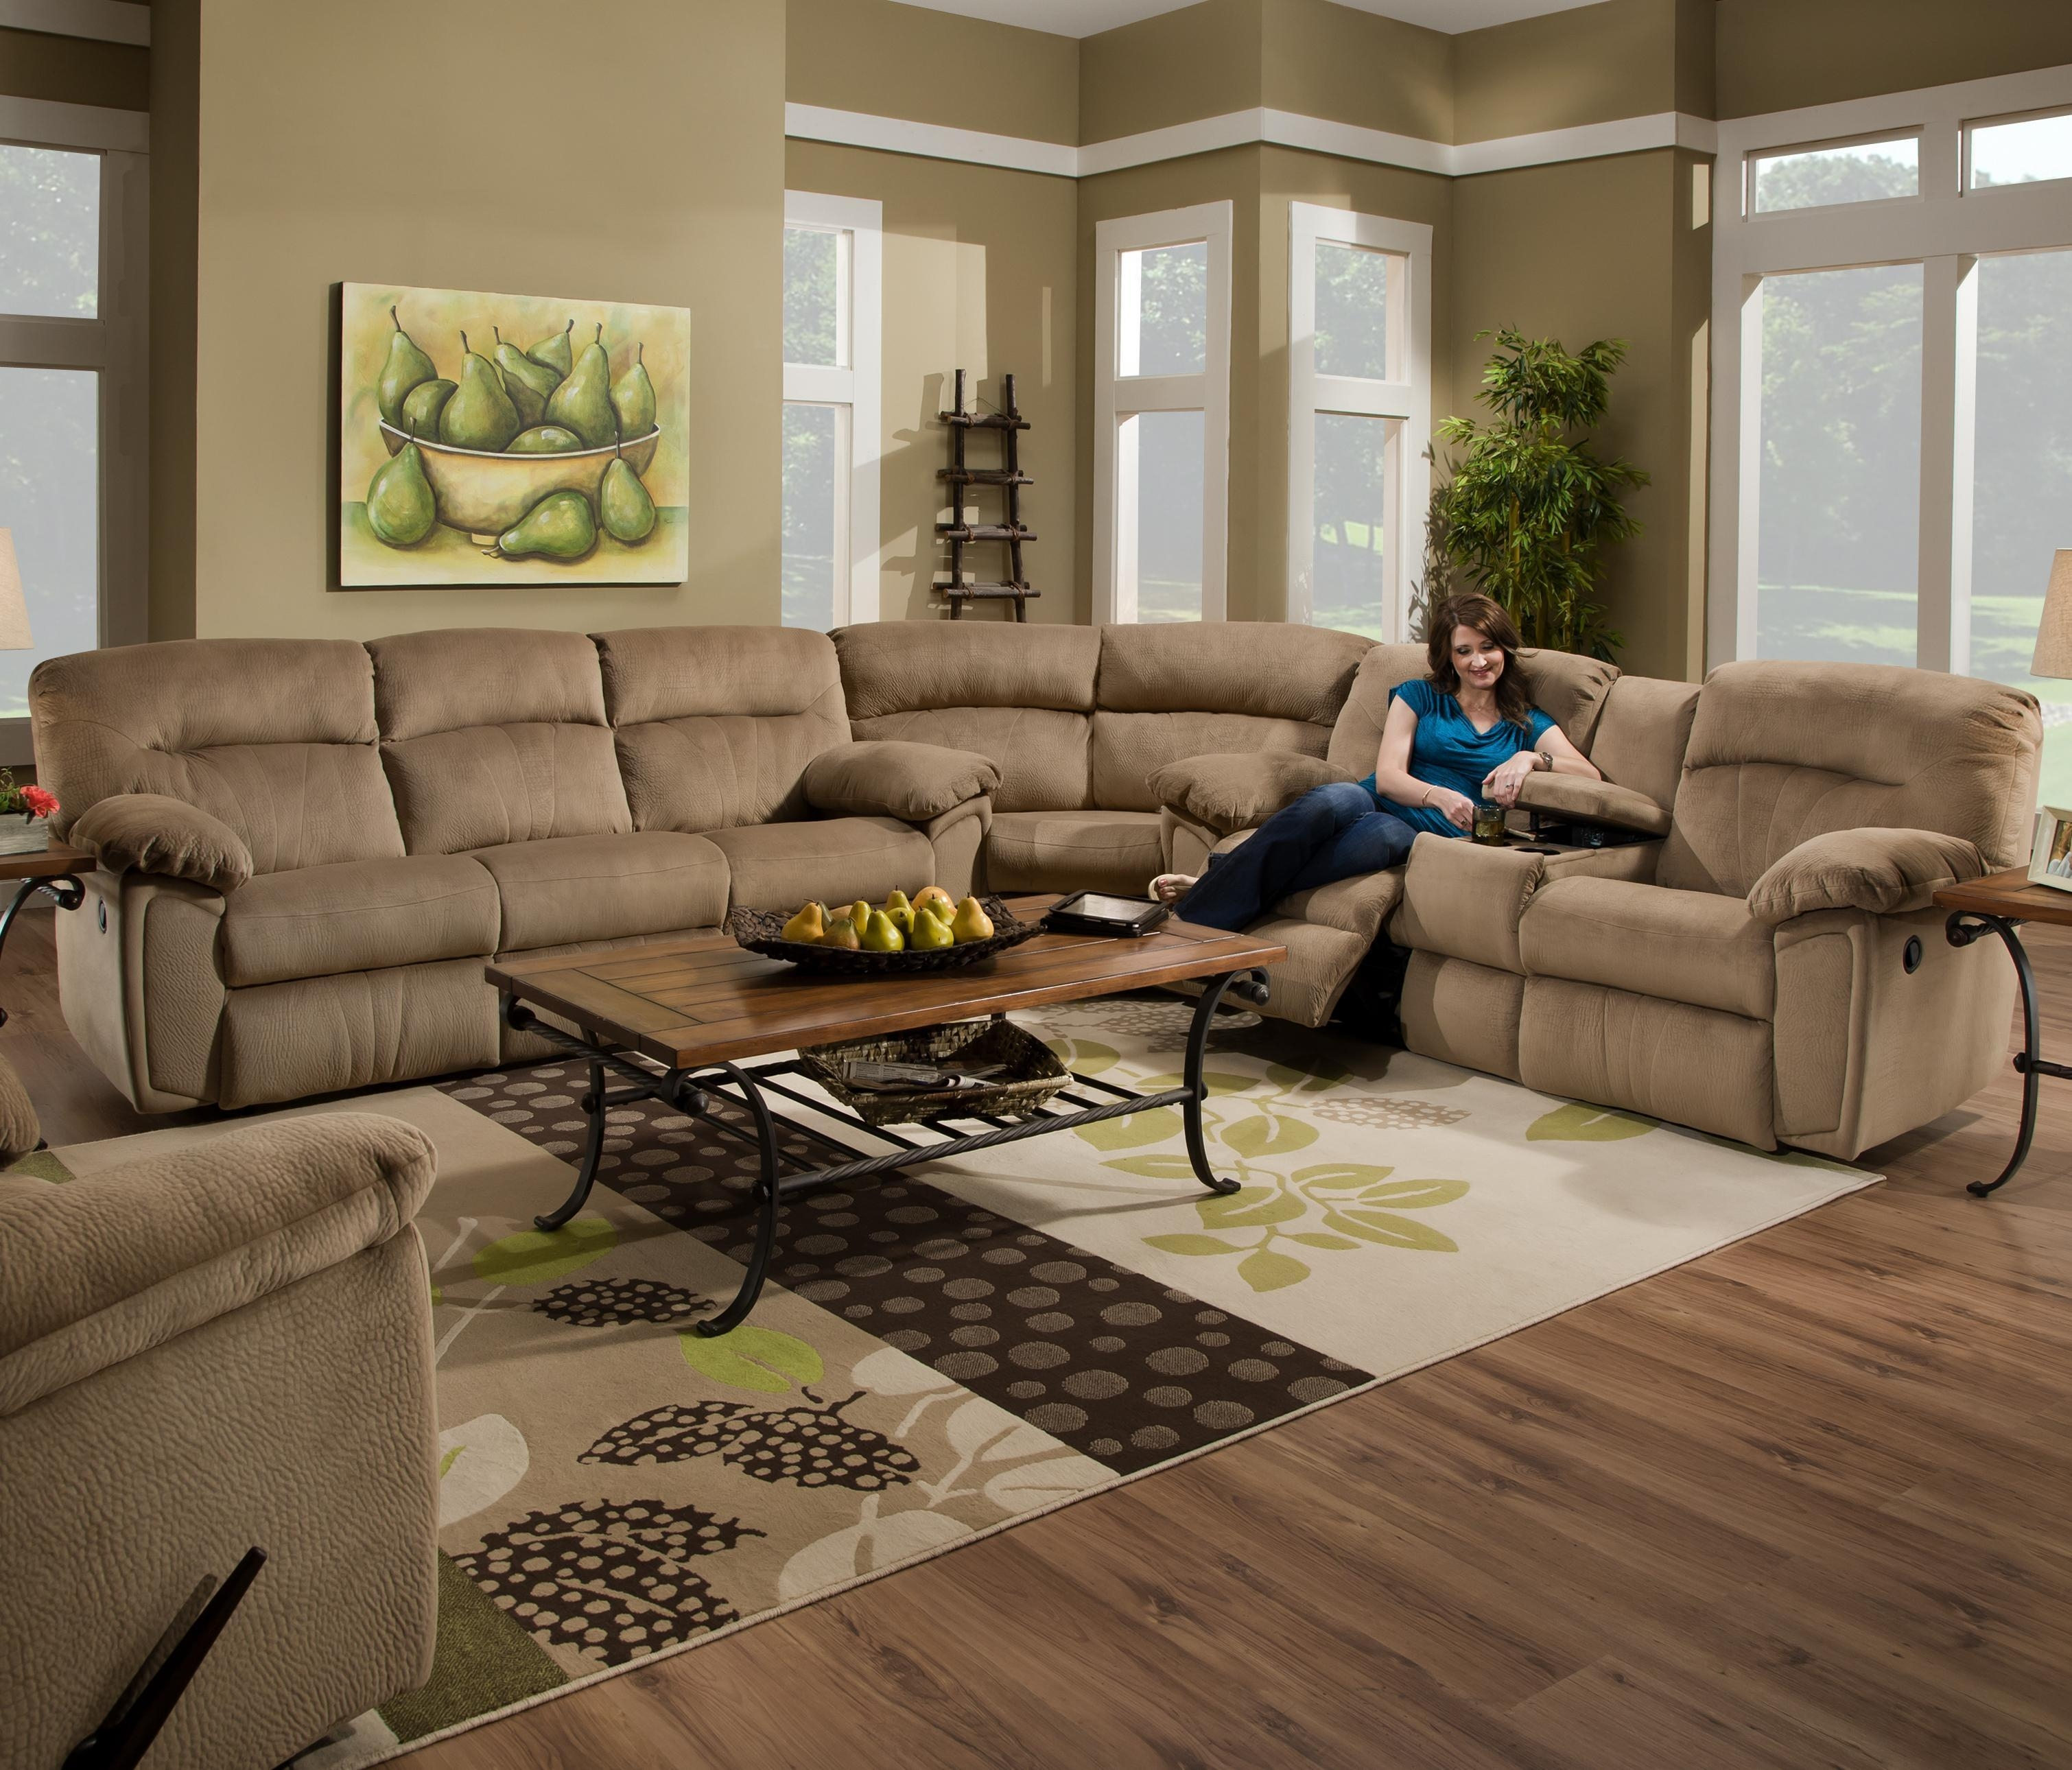 Furniture: Flex Steel Couch | Broyhill Recliner Sofas | Broyhill Sofa With Regard To Broyhill Reclining Sofas (Image 16 of 20)